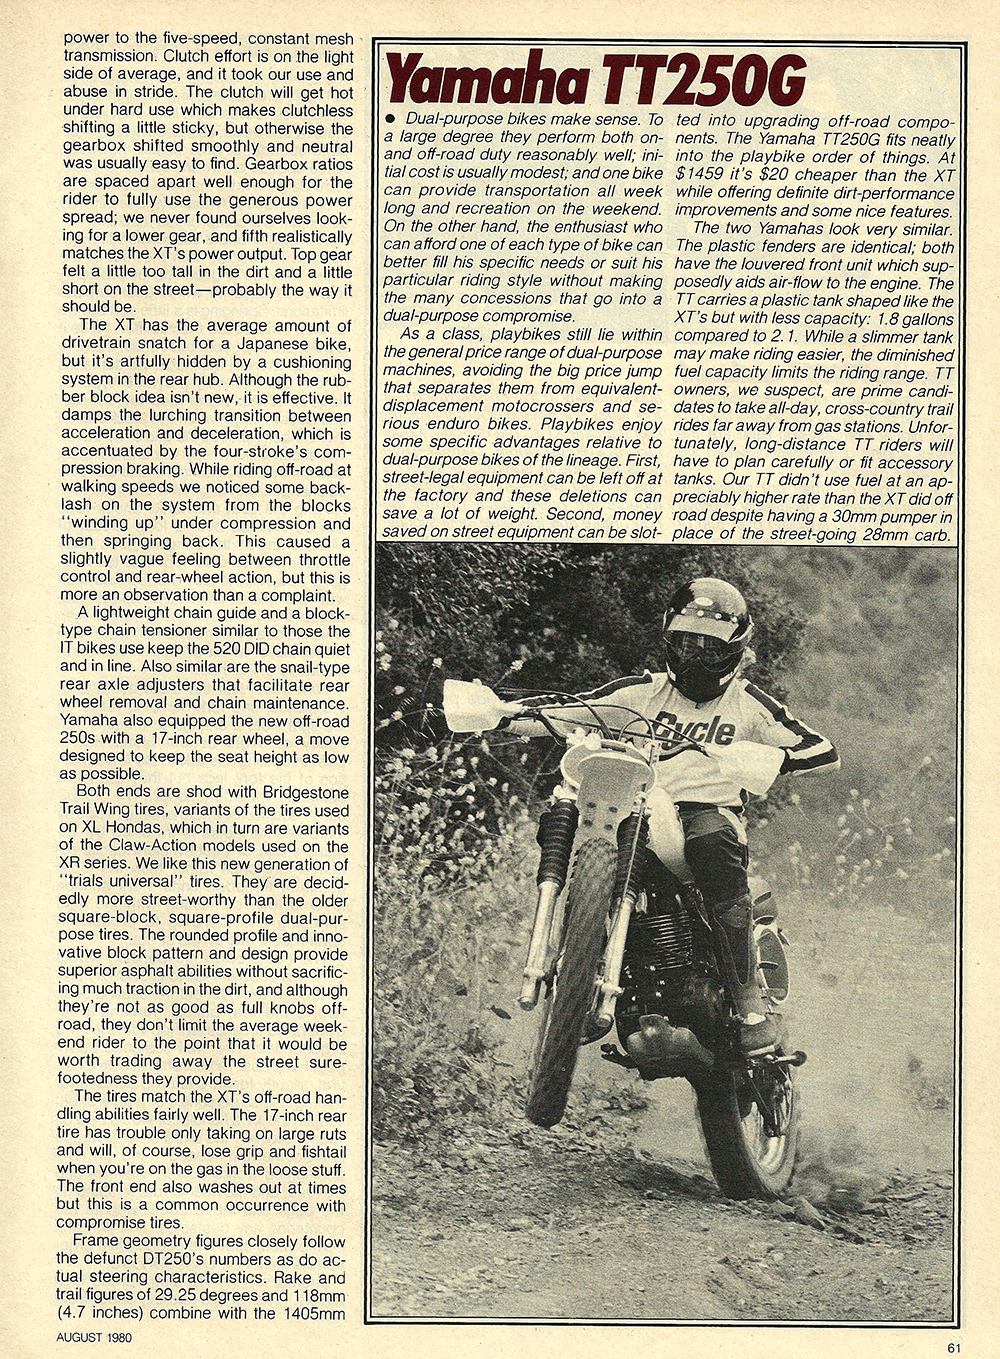 1980 Yamaha XT250 G road test 06.jpg